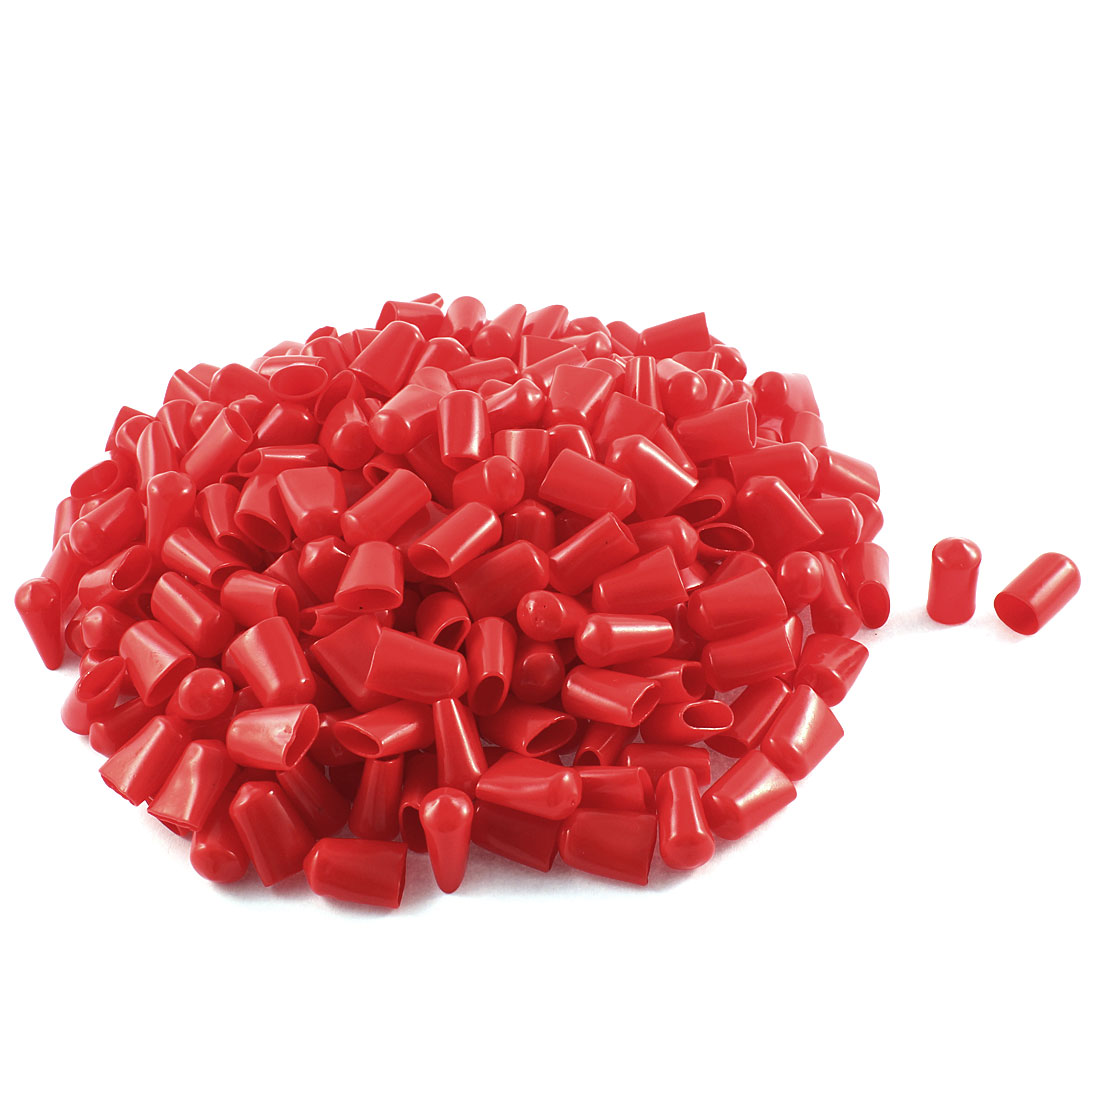 300Pcs Red Soft Plastic PVC Insulated End Sleeves Caps Cover 12mm Dia